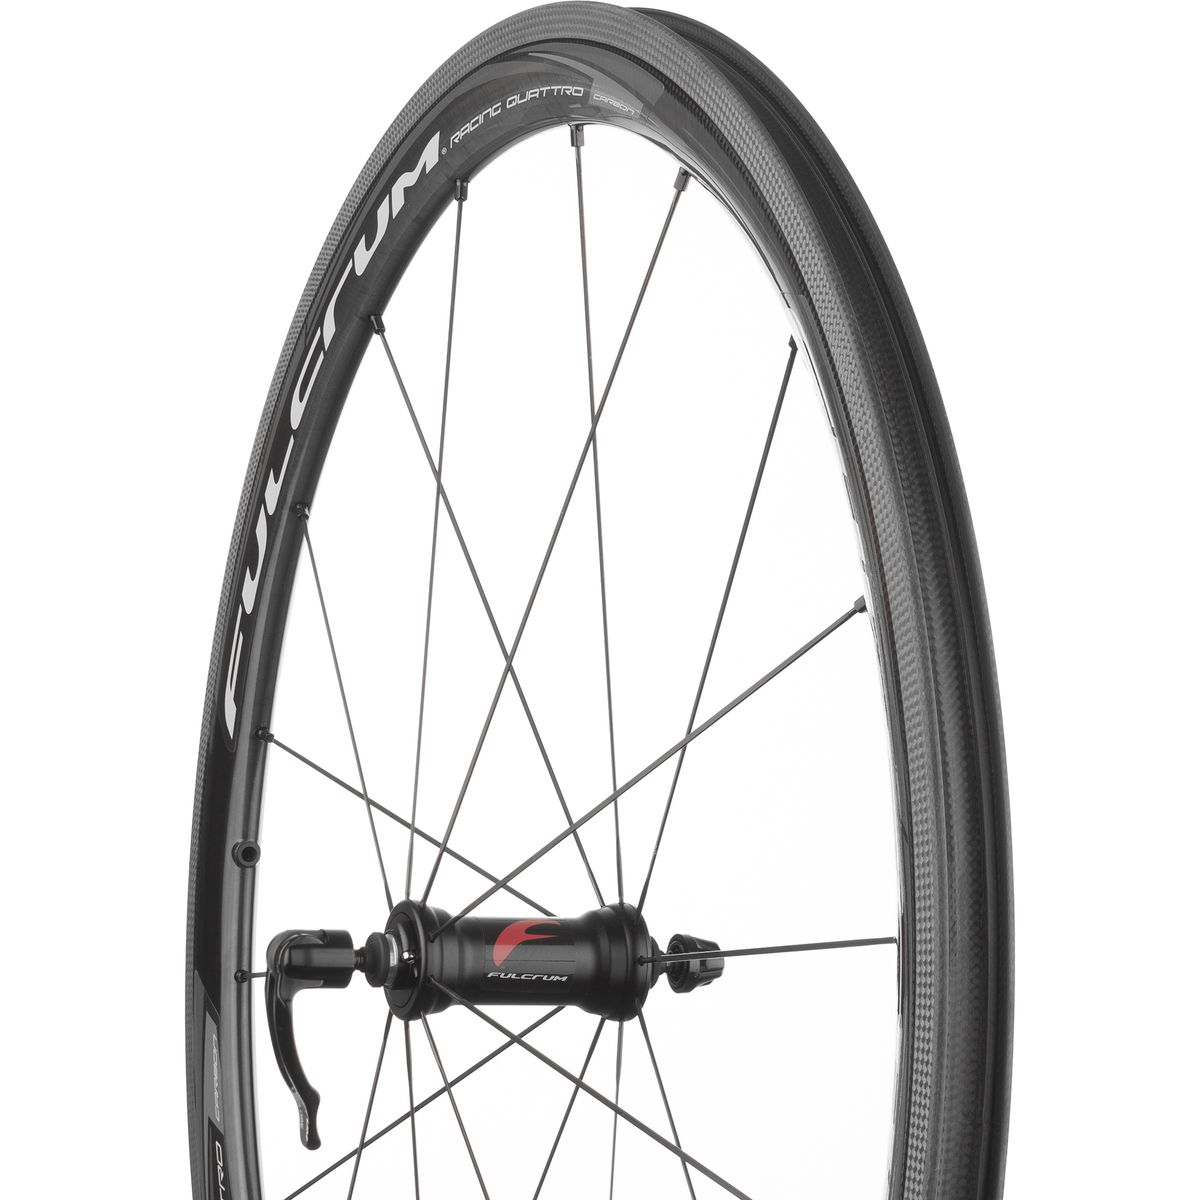 Fulcrum Racing Quattro Carbon Wheelset Clincher UD Carbon Shimano SRAM